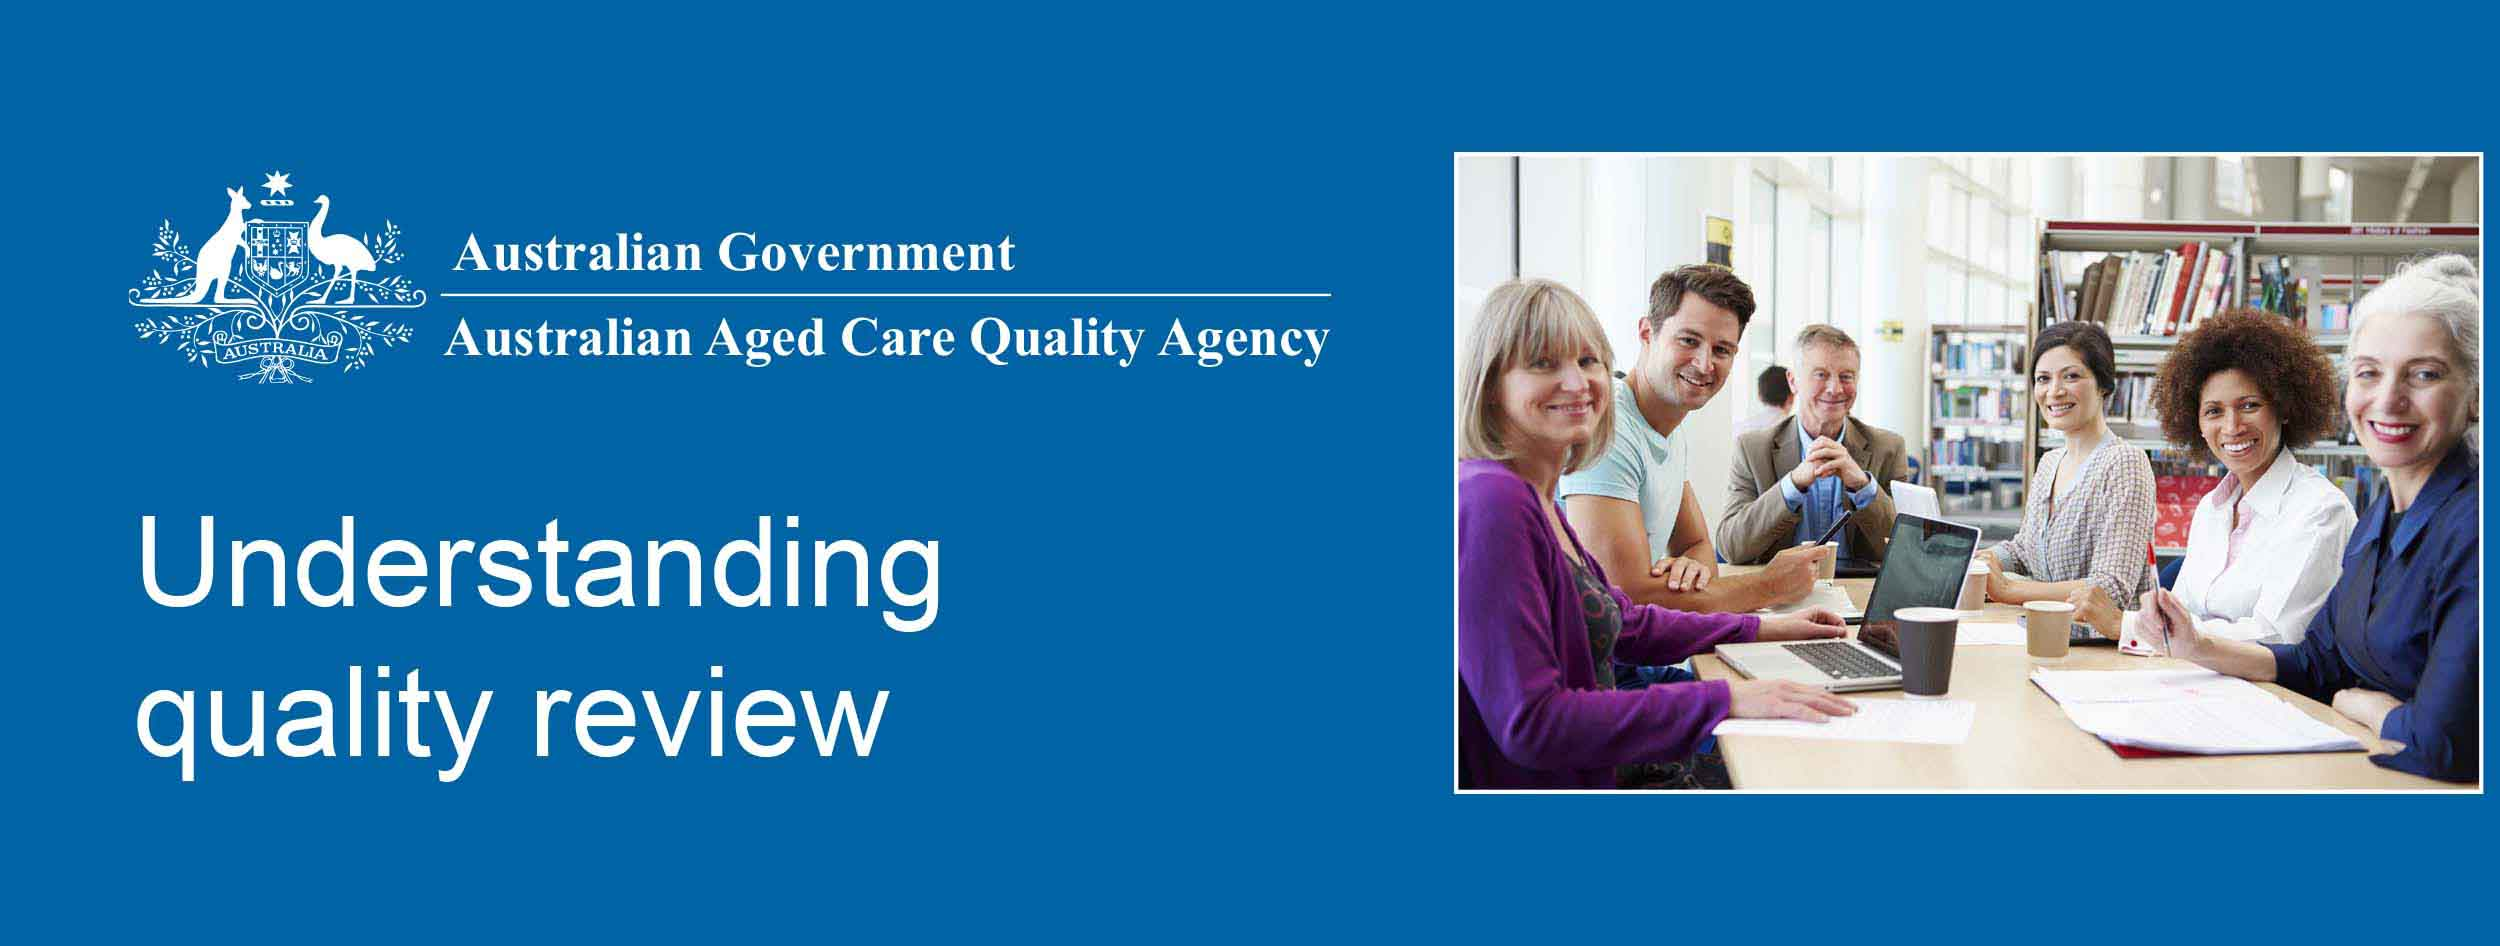 Understanding quality review - Adelaide - 7 - 8 November 2017